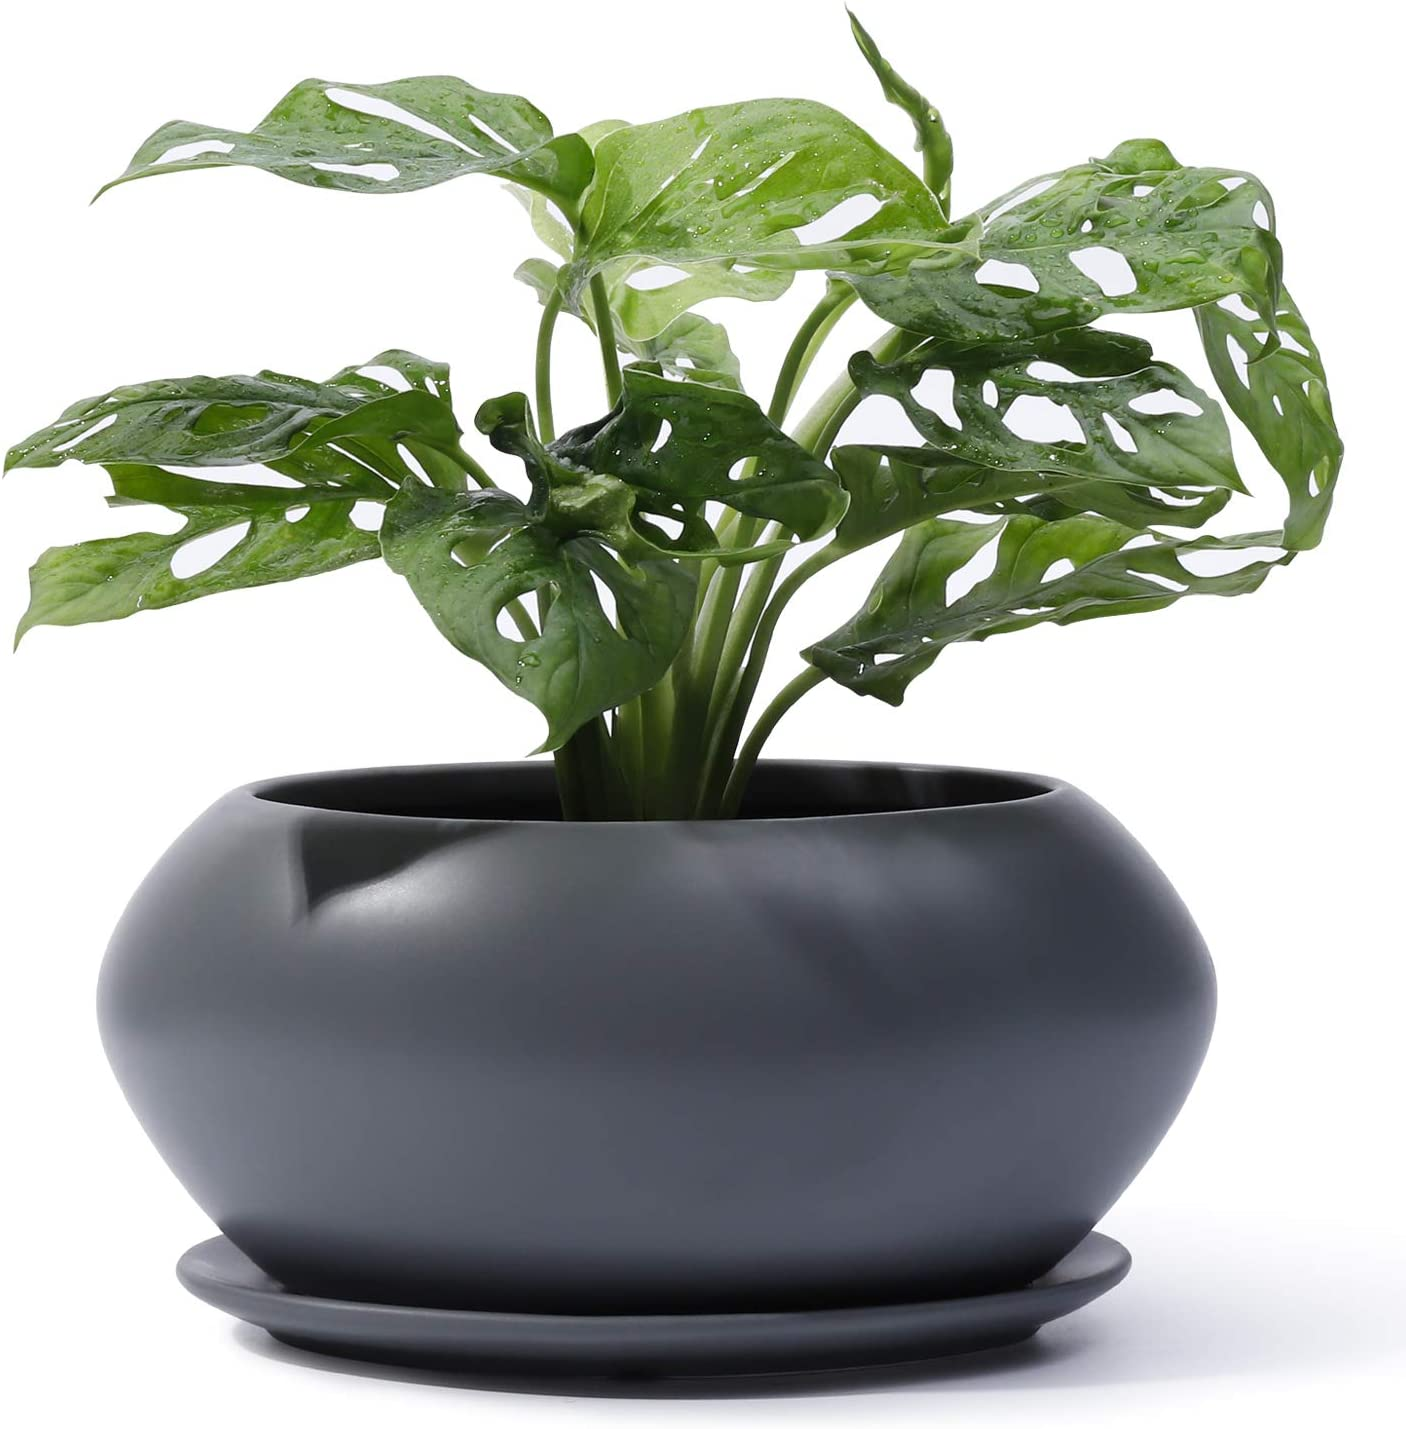 POTEY Ceramic Plant Flower Pots - Planter Medium Bonsai 6.9 Al sold out. NEW before selling ☆ Inch